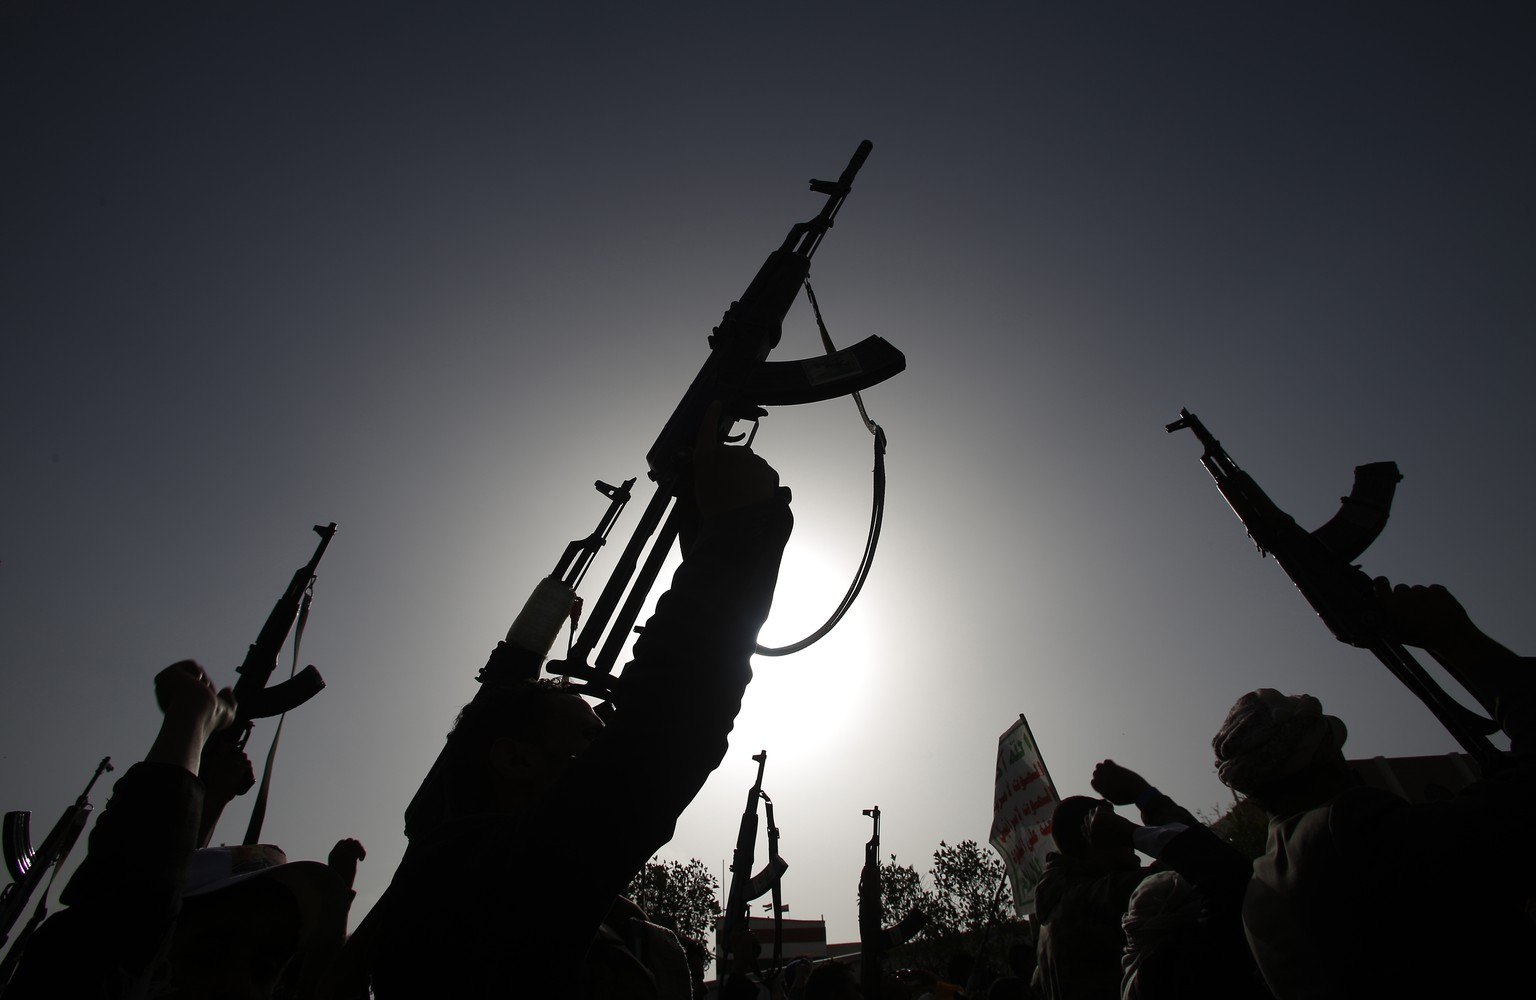 Shiite rebels known as Houthis hold up their weapons to denounce the Saudi-led airstrikes as they chant slogans during a protest in Sanaa, Yemen, Monday, April 27, 2015. Saudi-led airstrikes on Monday targeted Shiite rebels across Yemen, killing several people in the southern port city of Aden and striking a weapons depot in the rebel-held capital, officials and witnesses said. (AP Photo/Hani Mohammed)